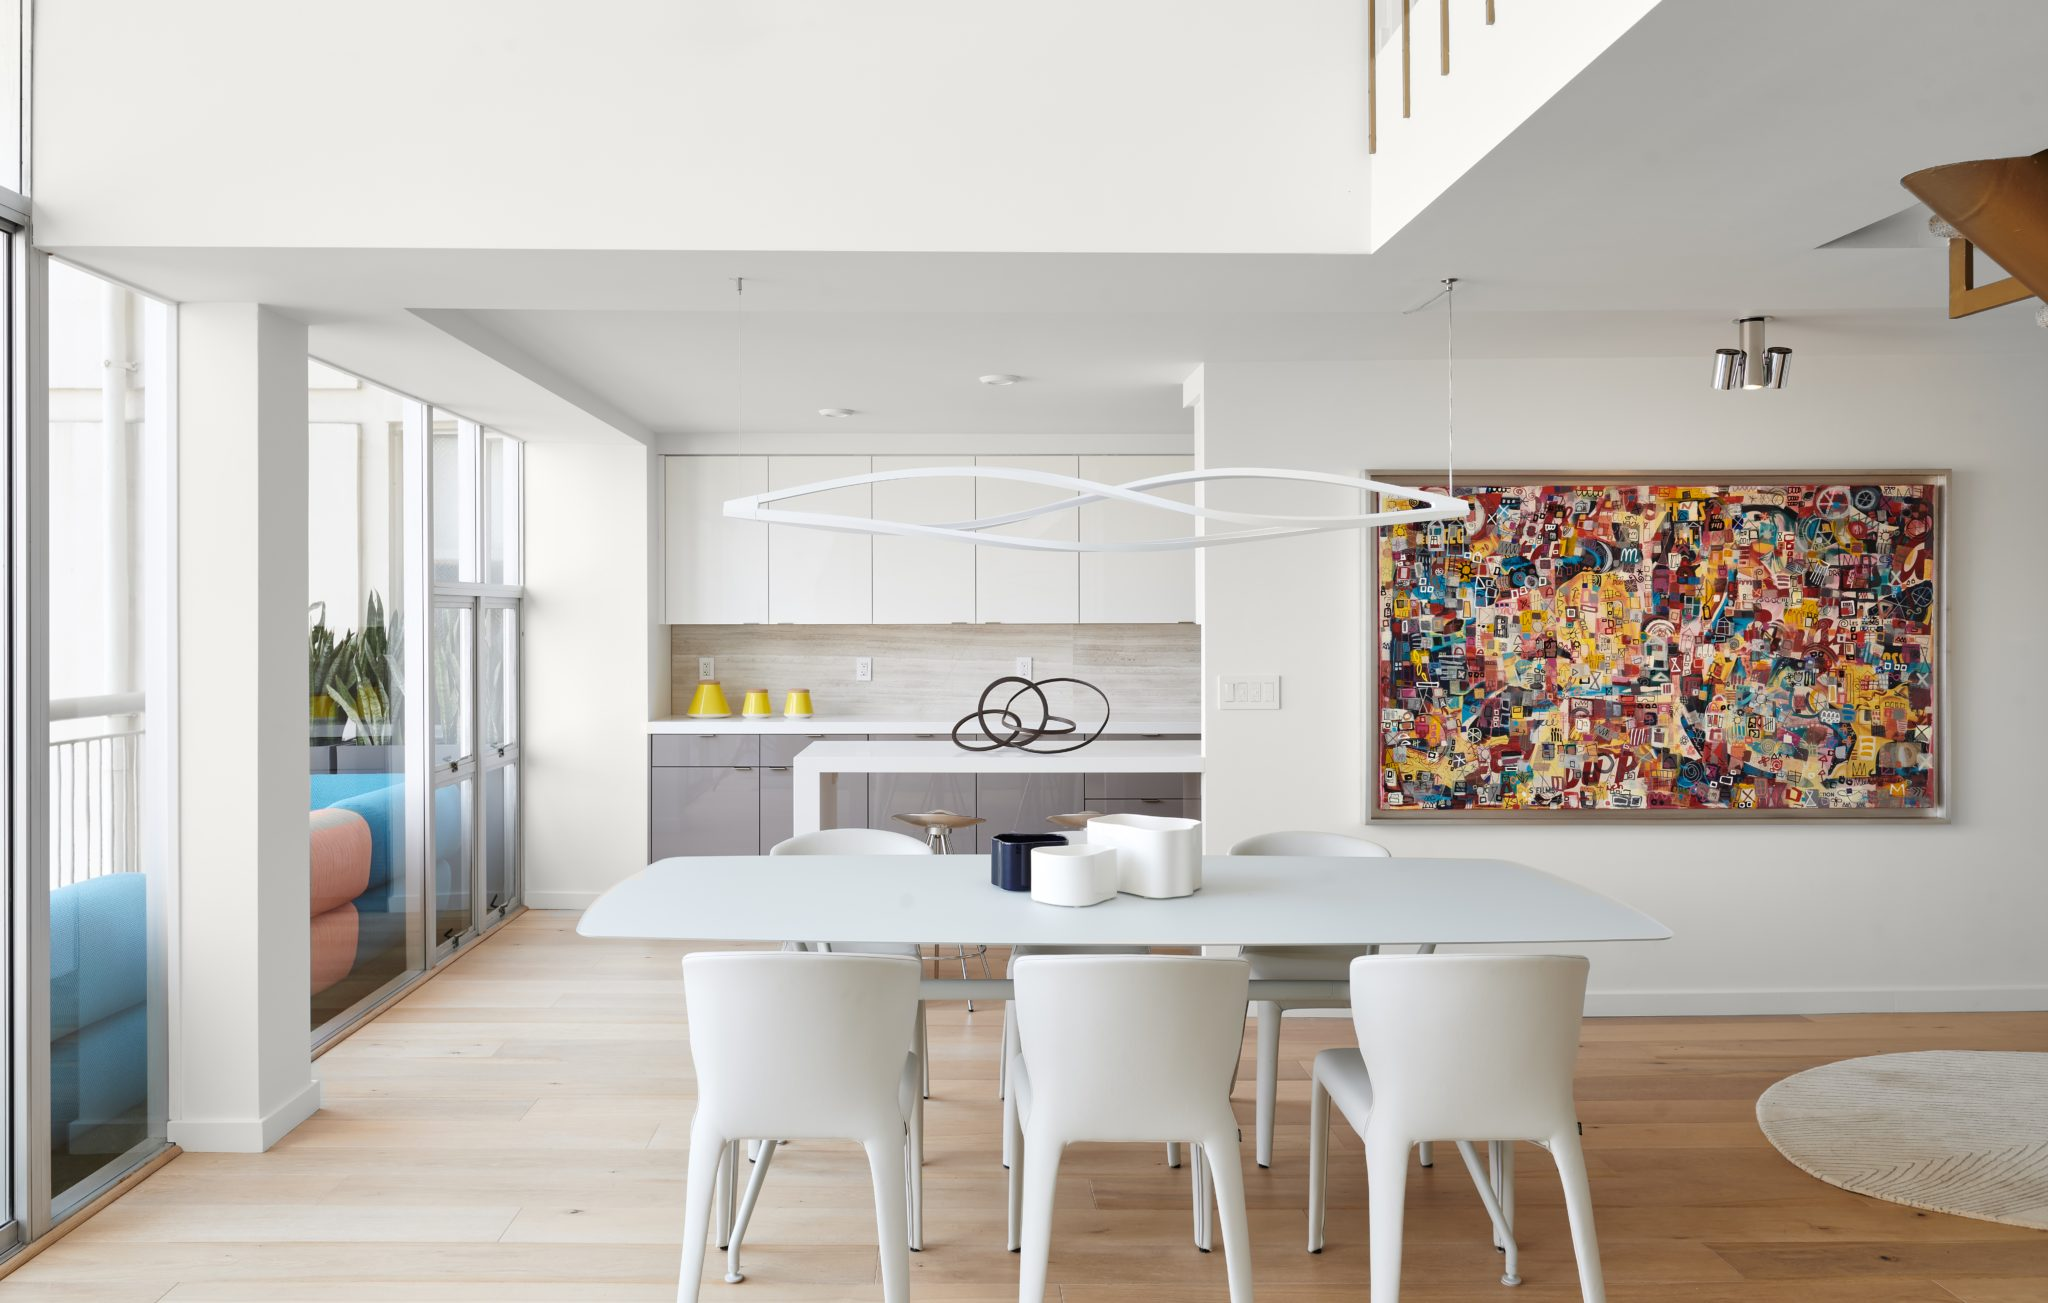 Several of the home's furnishings reference the 1960s', when the house was originally built. The supended light fixture from Nemo Lighting breaks up the space between the ceiling andwhitetable with curved corners, fromRimadesio. The Hola Cassina chairs weredesigned by Hannes Wettstein. Bringing a burst of color to the space,the vibrant painting was created by Dutch artist Micha Tauber.